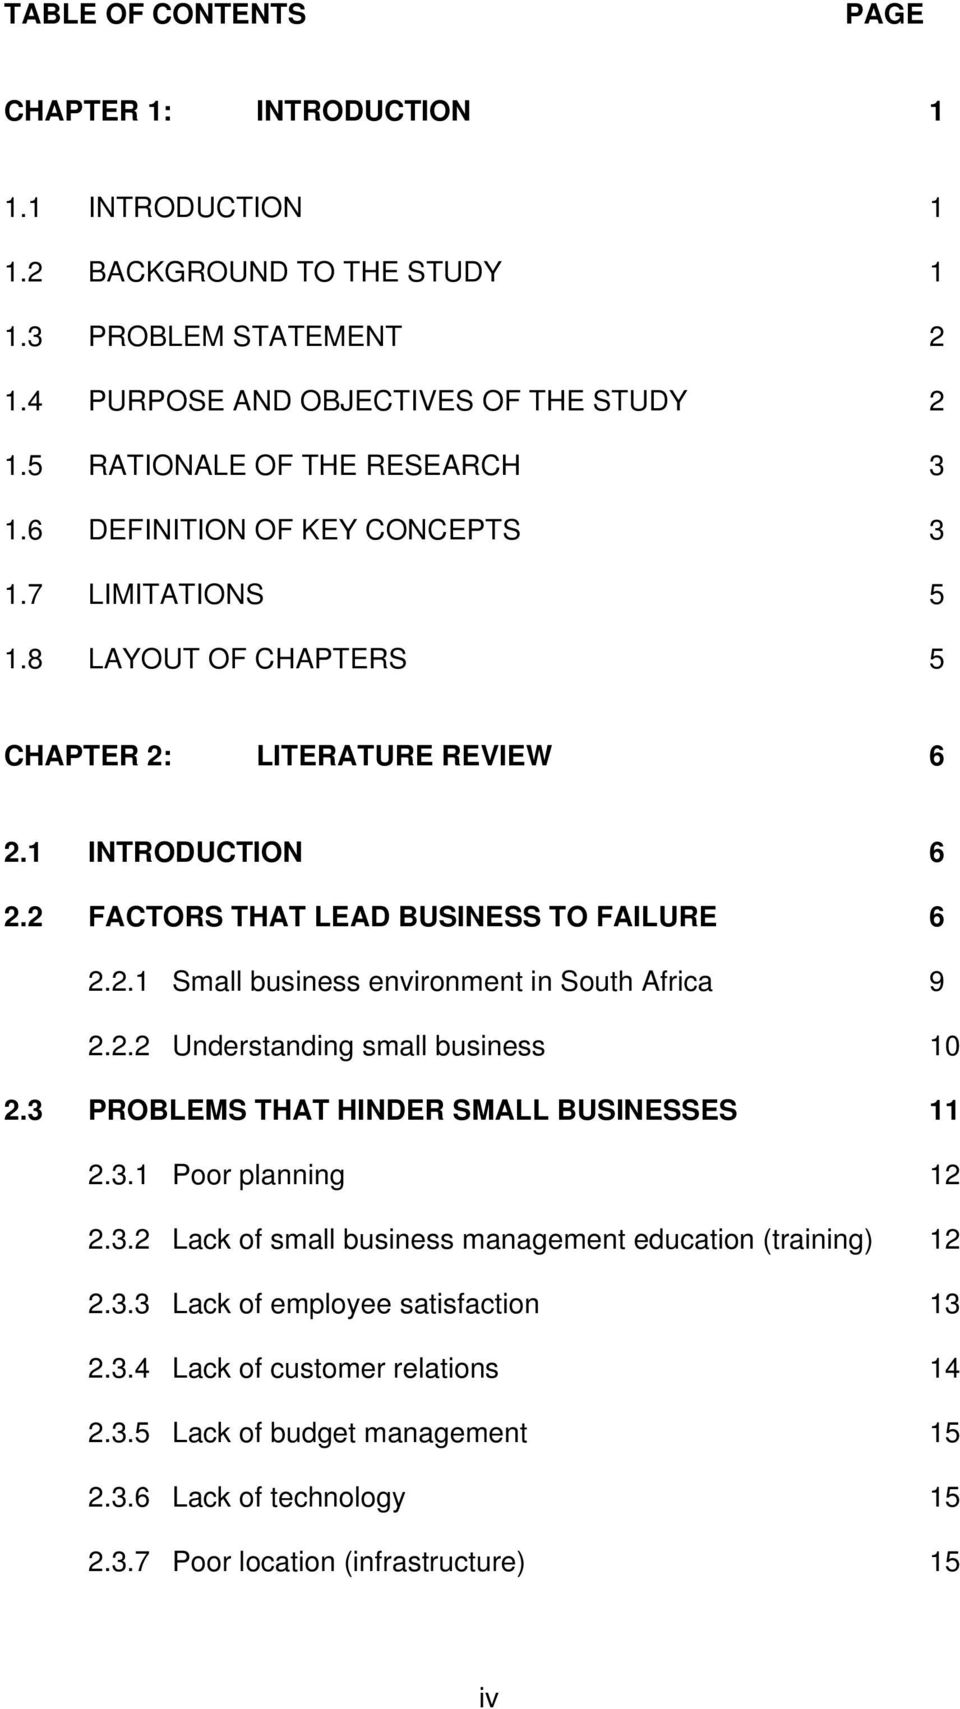 2 FACTORS THAT LEAD BUSINESS TO FAILURE 6 2.2.1 Small business environment in South Africa 9 2.2.2 Understanding small business 10 2.3 PROBLEMS THAT HINDER SMALL BUSINESSES 11 2.3.1 Poor planning 12 2.